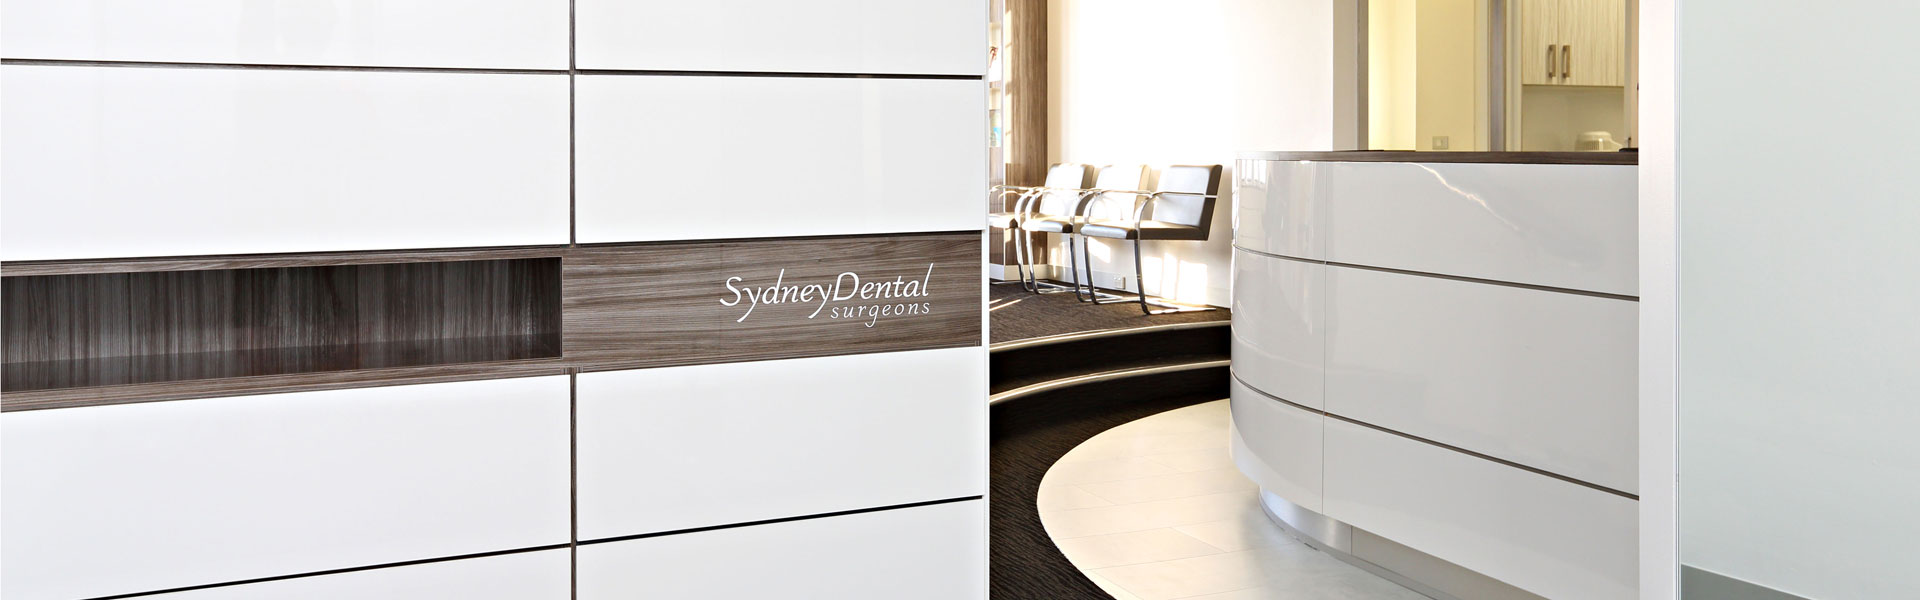 Medifit are dental practice design and fitout specialists